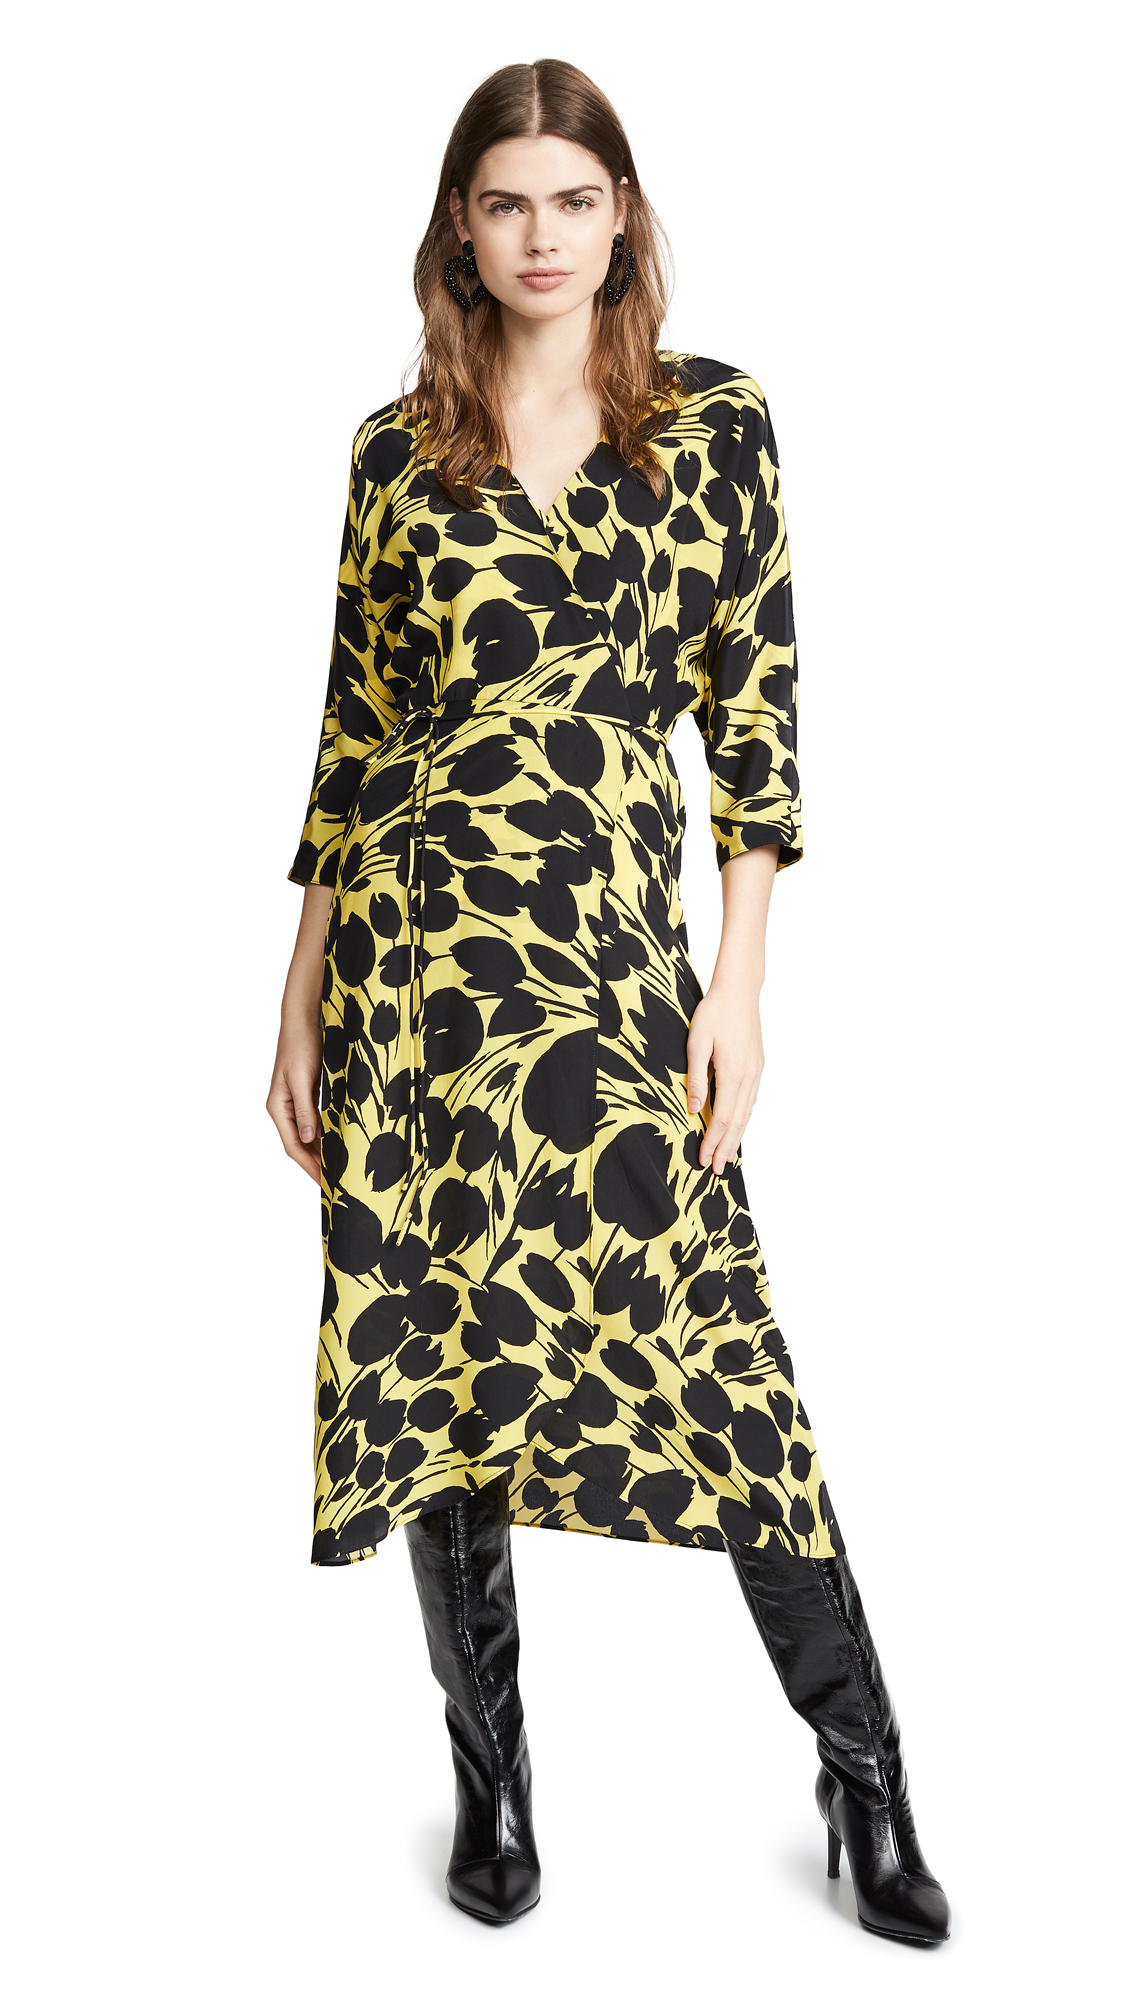 NO. 6 Viola Dress in Black/Yellow Tulip